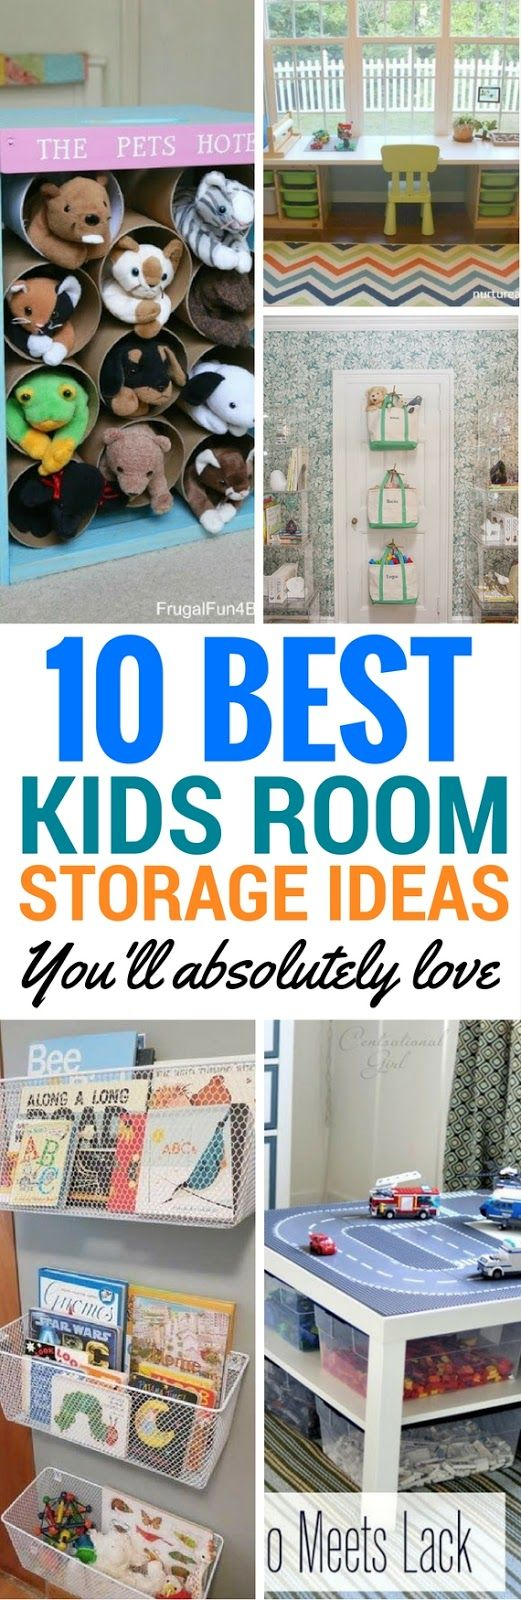 10 Kids Room Ideas And Storage Solutions For Both Girls And Boys – Cheap and cool ways to make your kids room organized and look